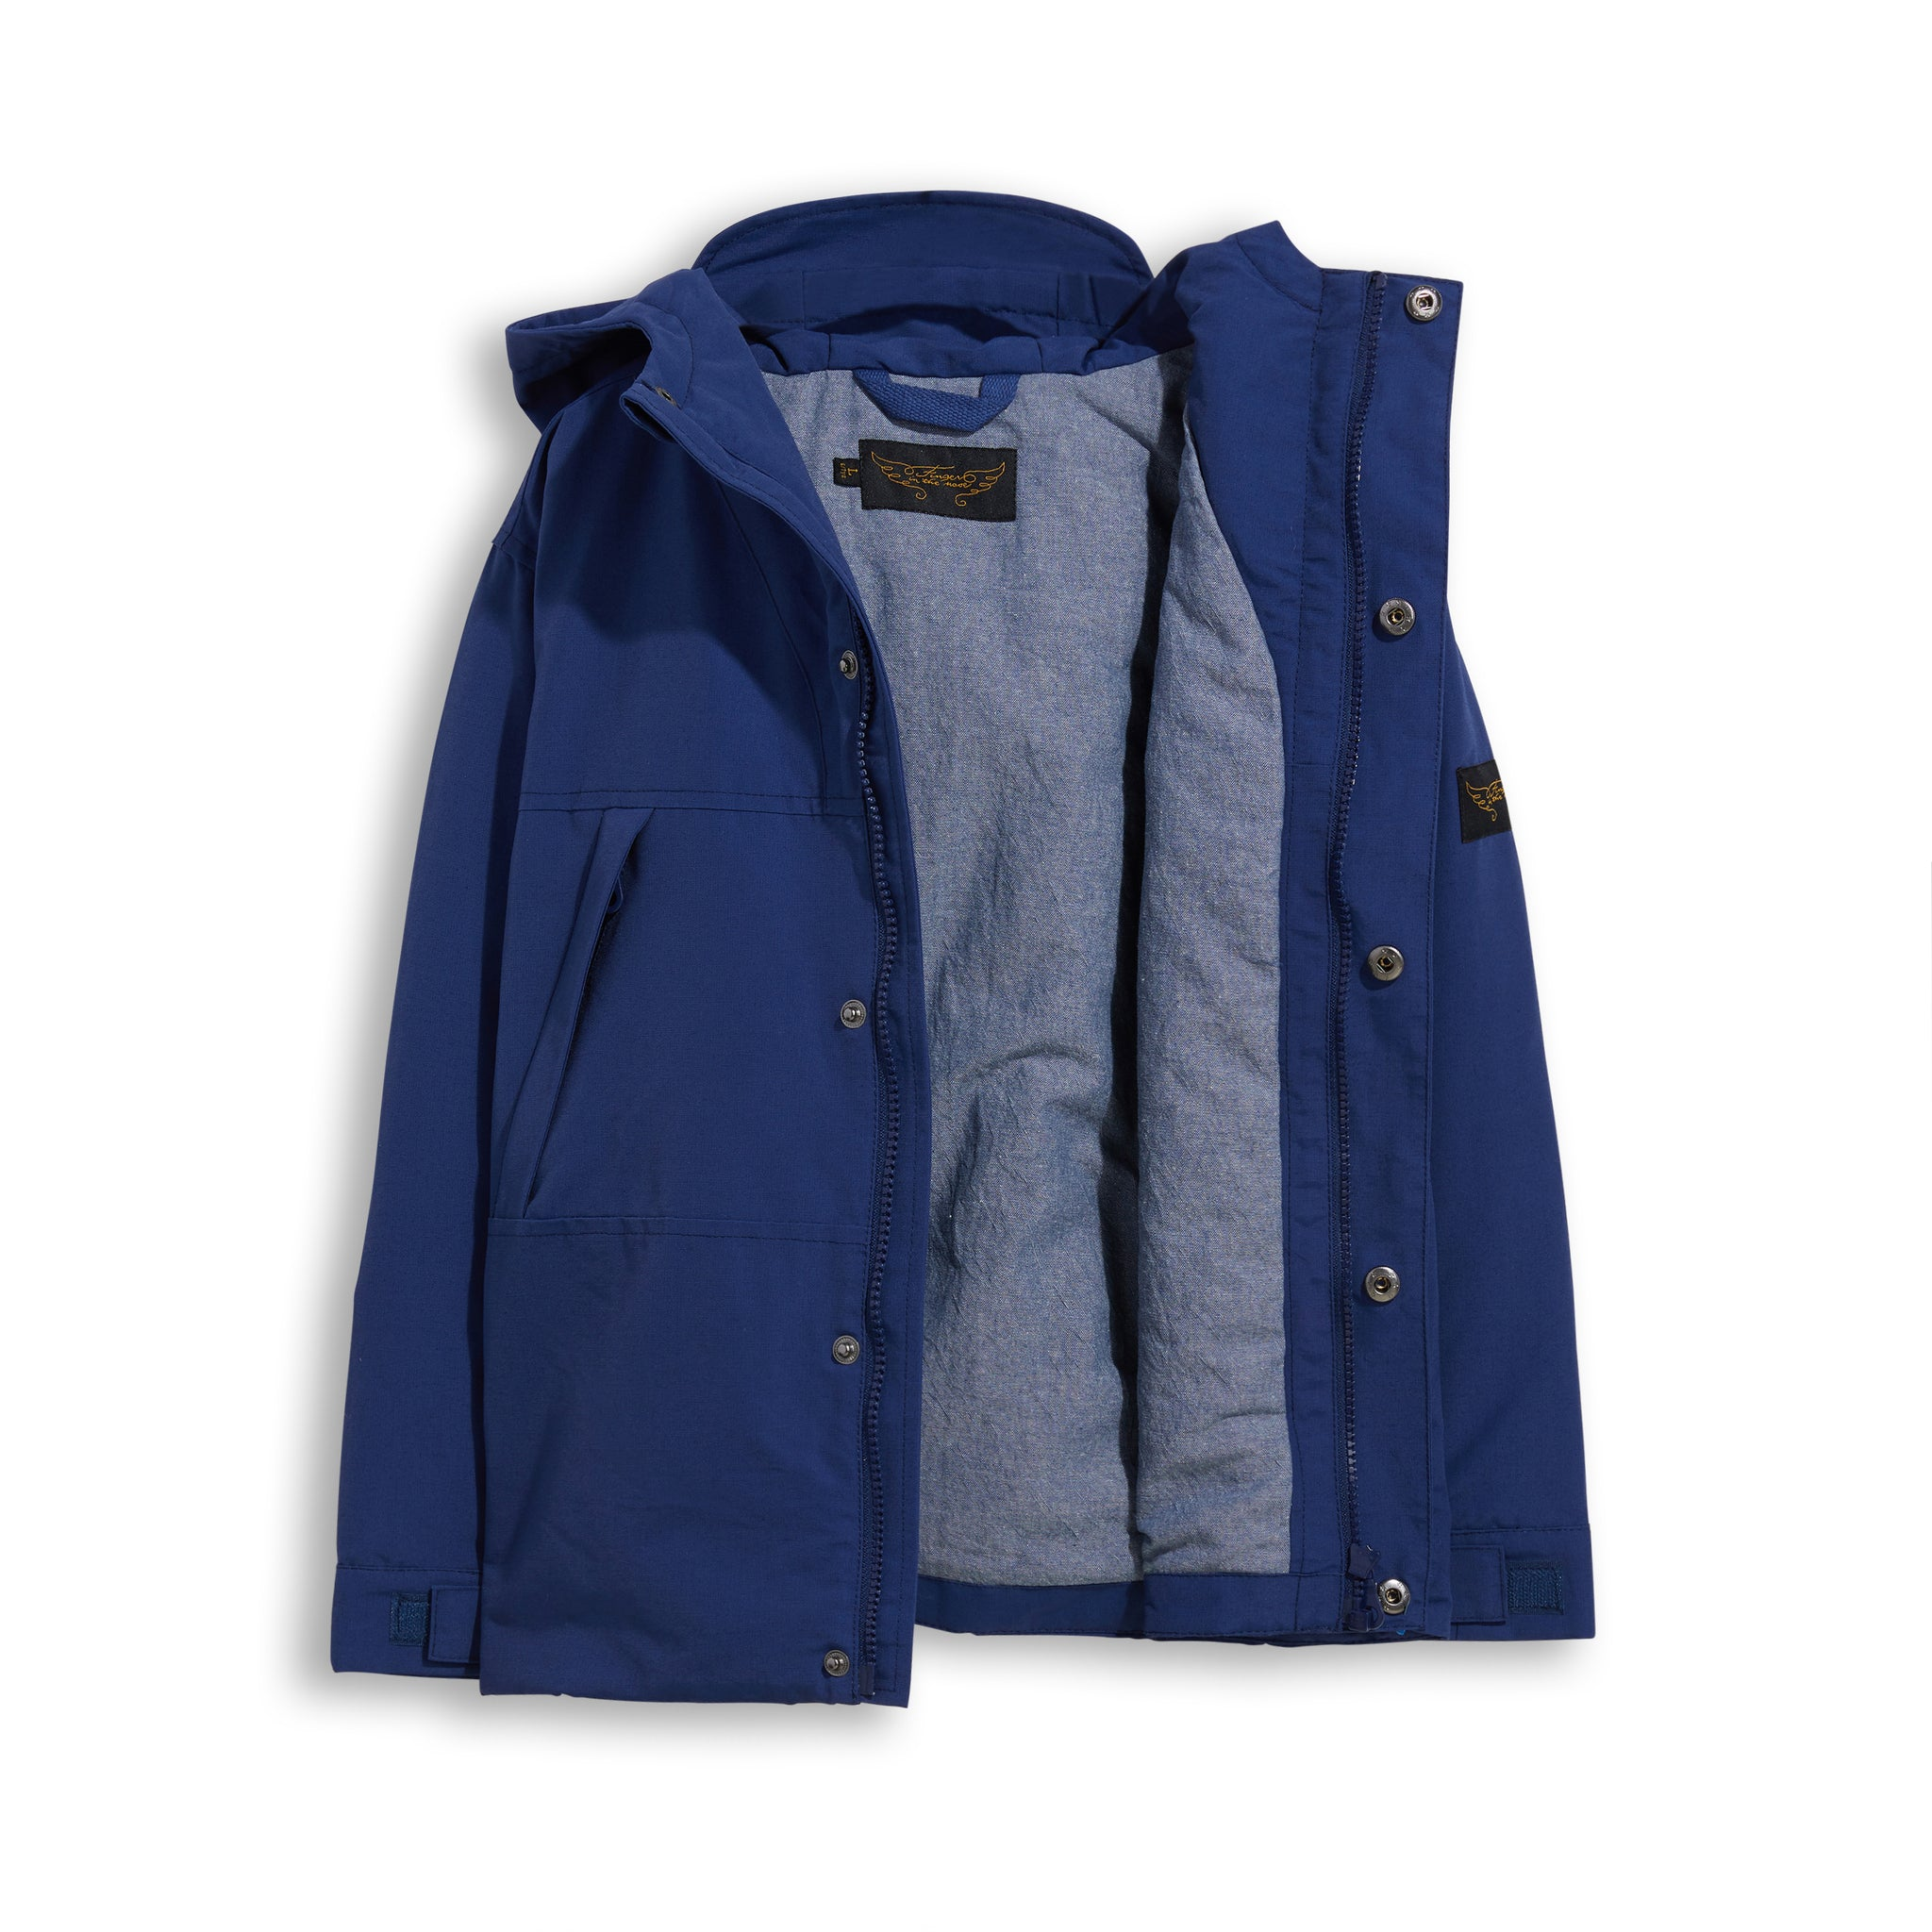 ZEPHYR Royal Blue -  Windbreaker Jacket 3